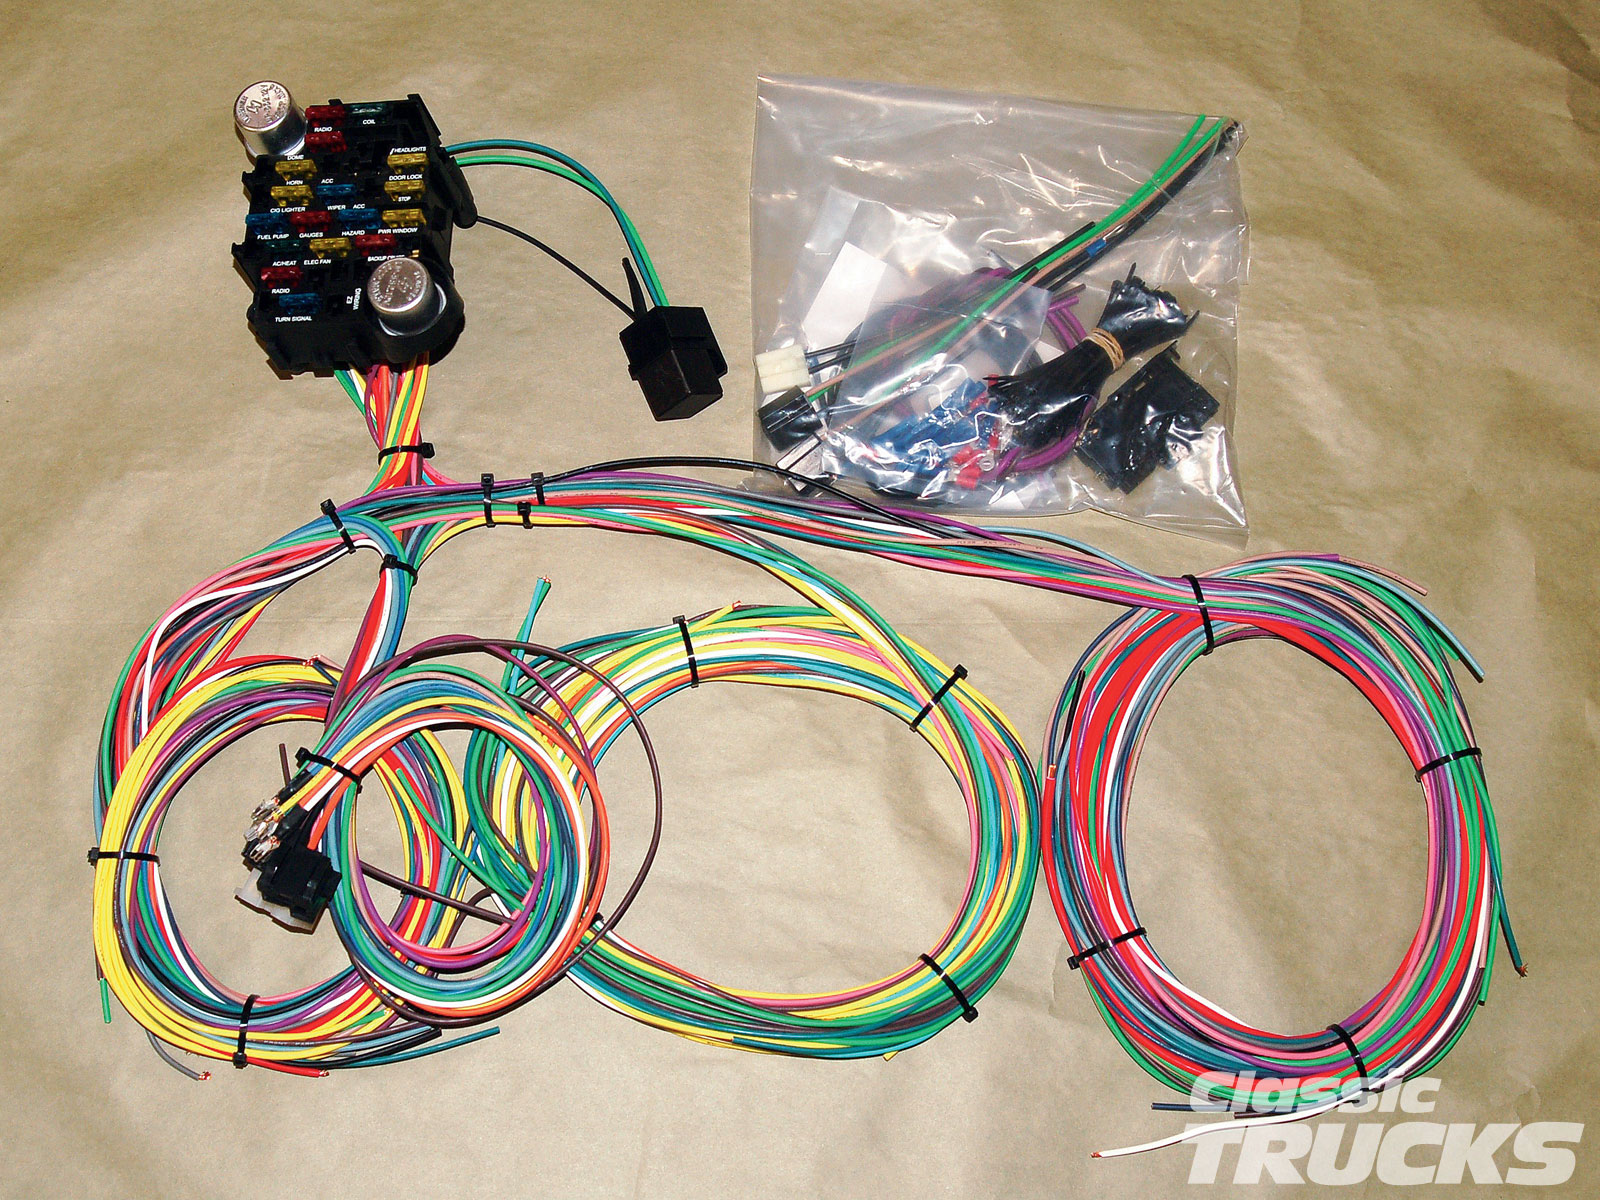 medium resolution of aftermarket wiring harness install hot rod networkaftermarket wiring harness install u2013 rewiring a classic truck st hot rod network